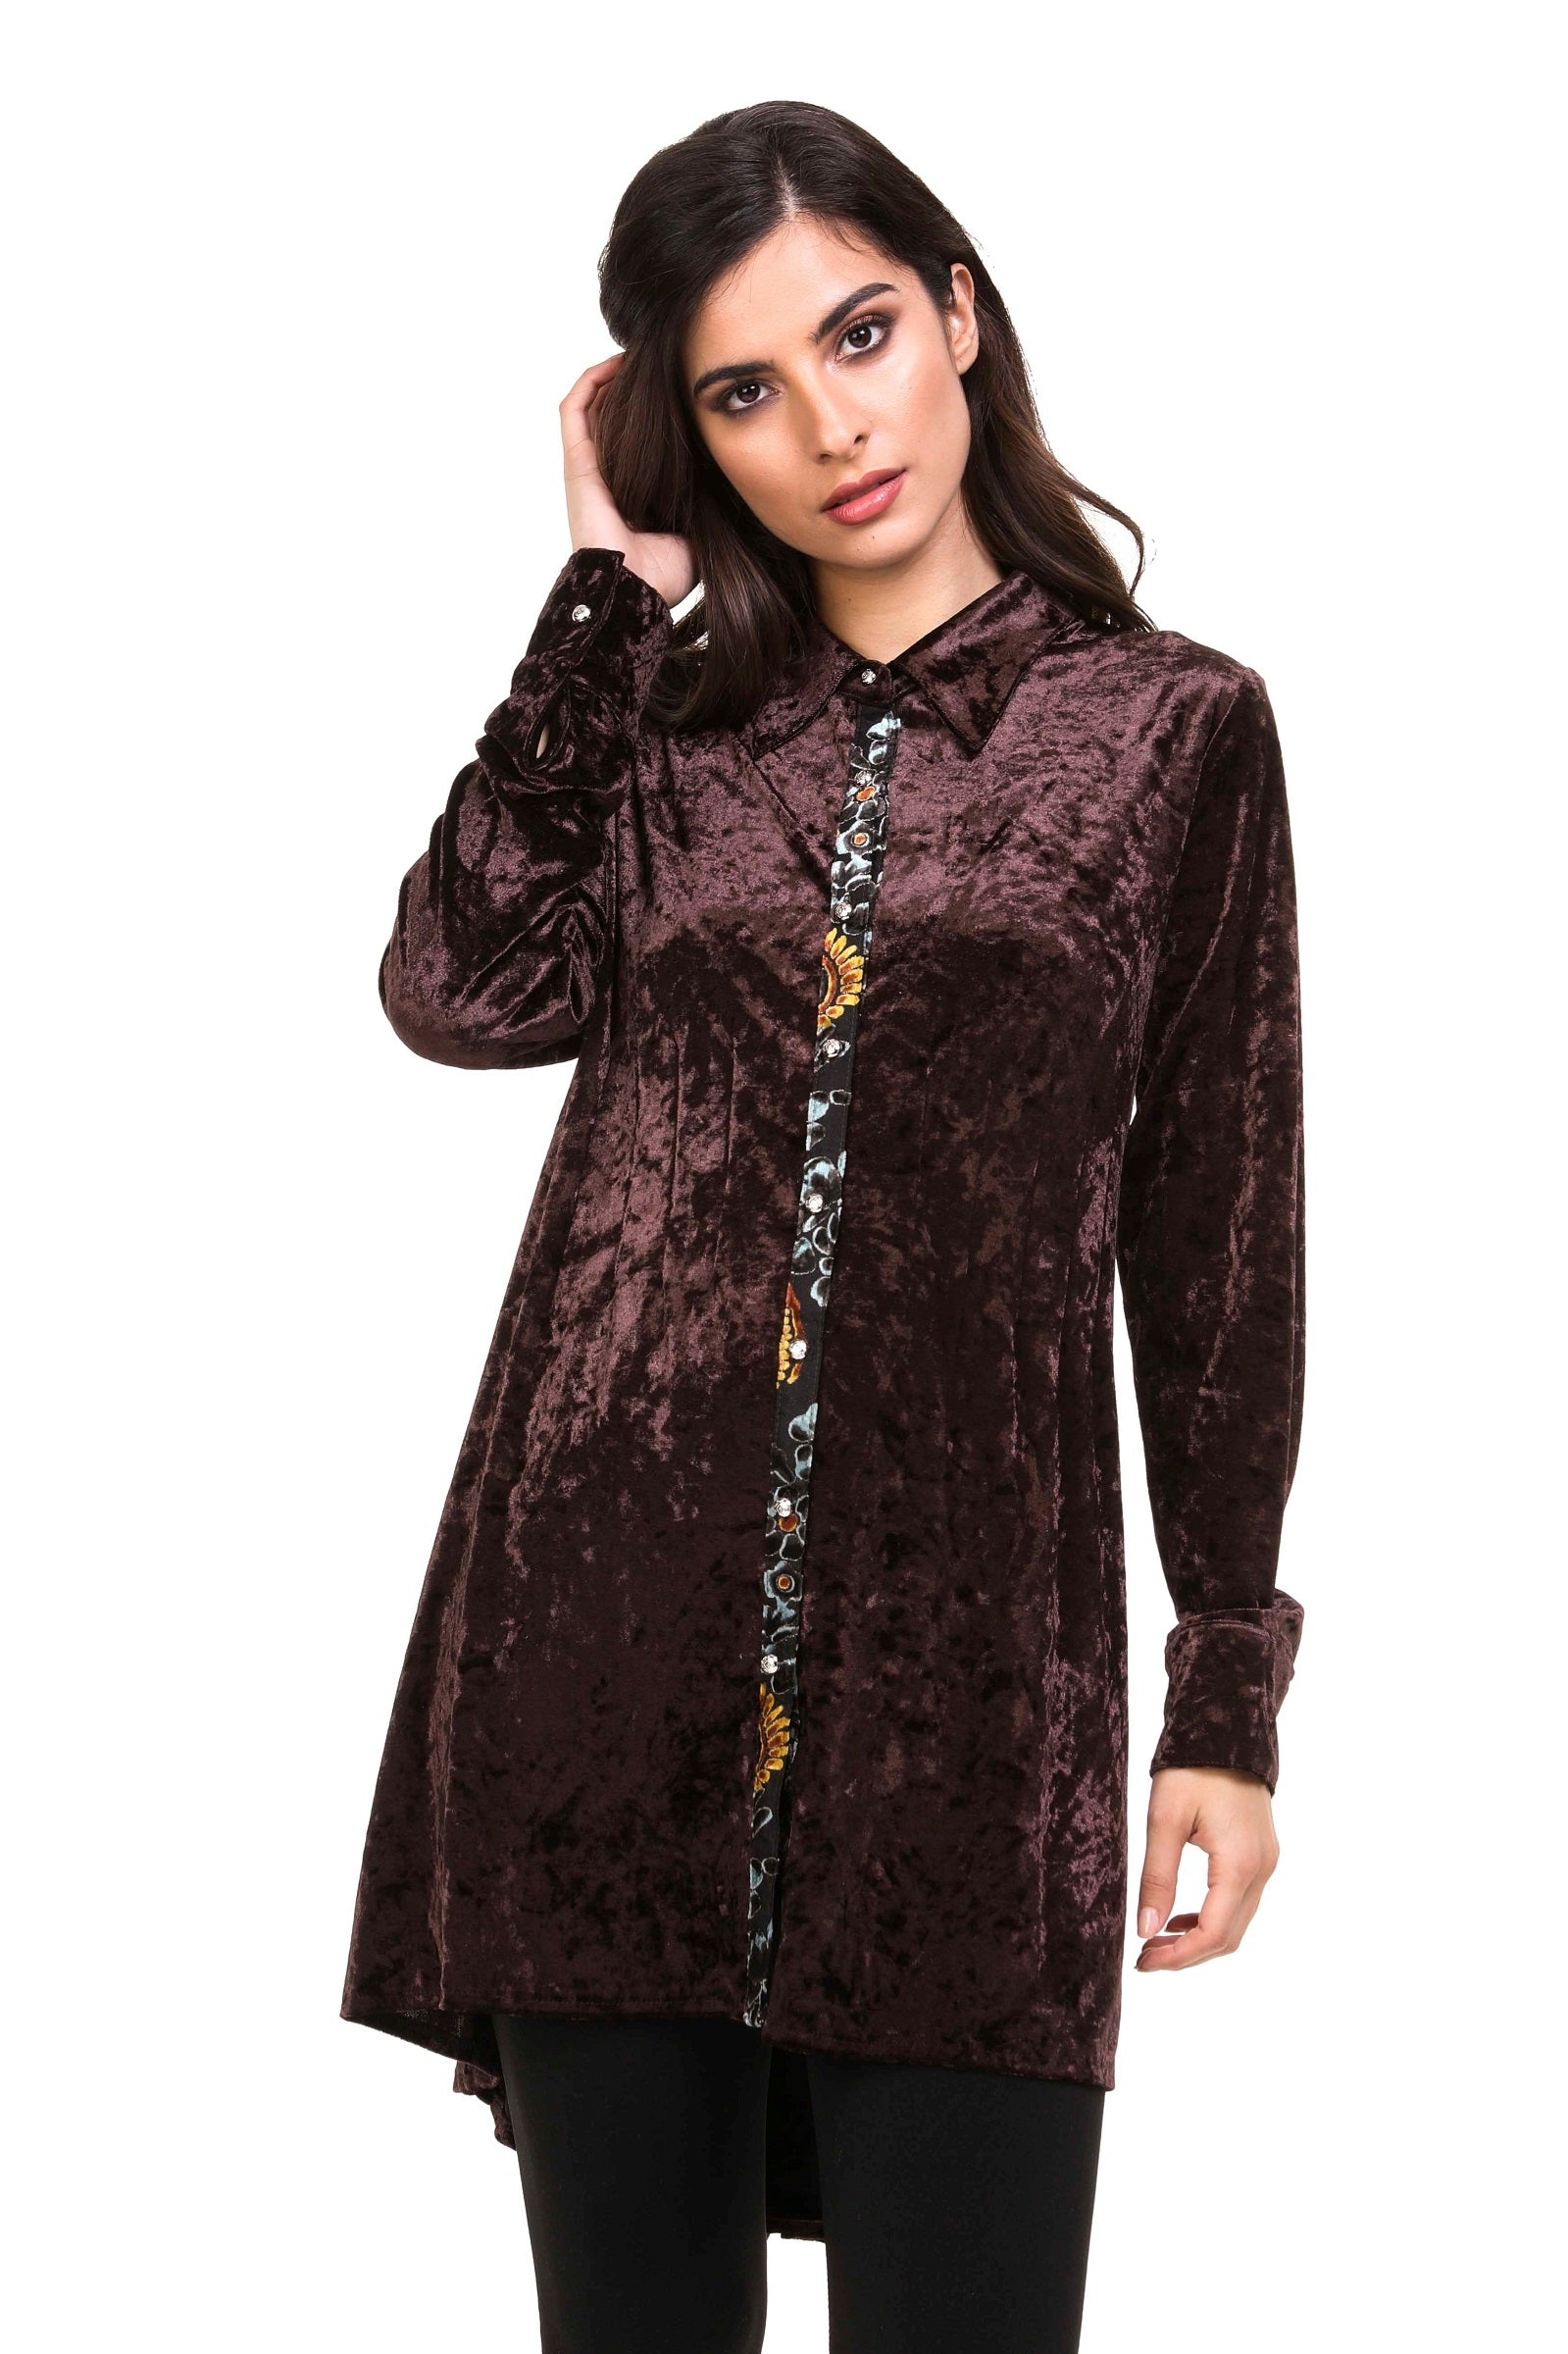 Front view cocoa burnout velvet high low button front tunic top